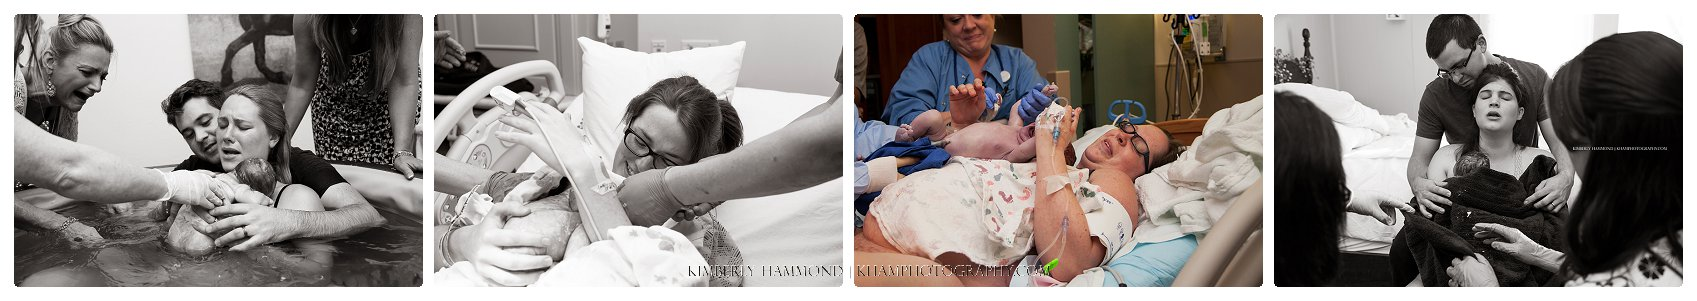 DFW Birth Photography| Khamphotography.com